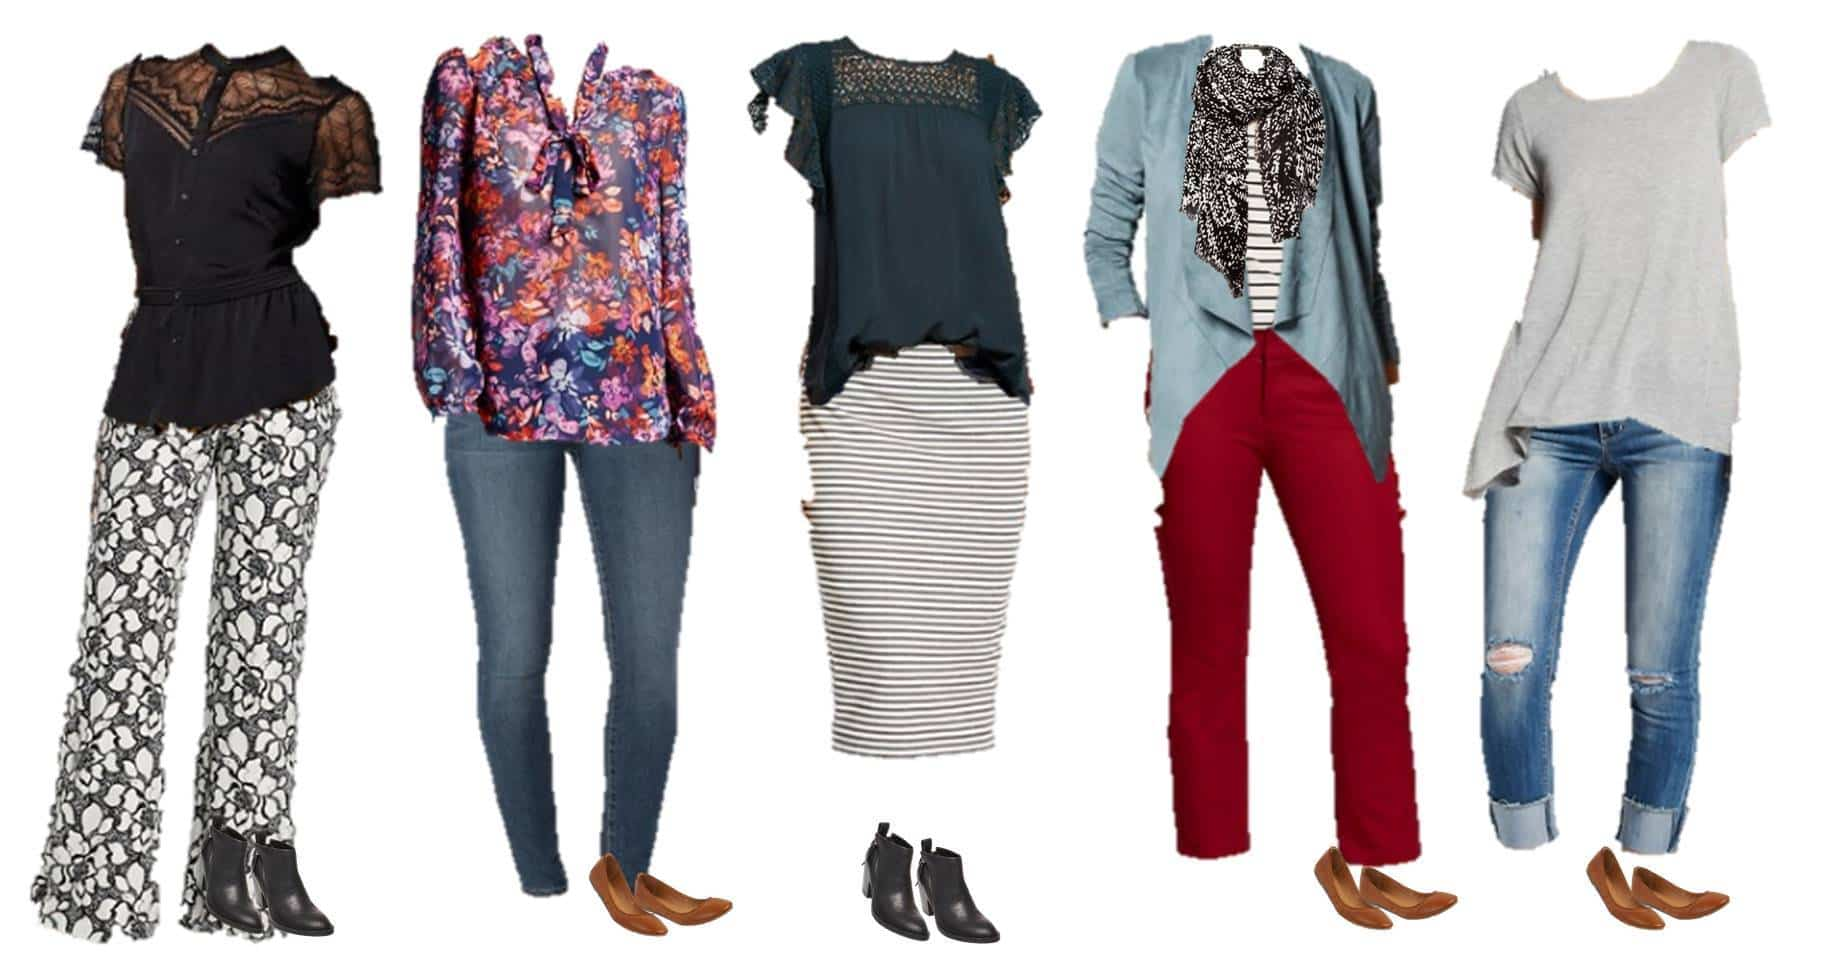 8.2 Mix and Match Fashion - Fall Styles from Target 11-15